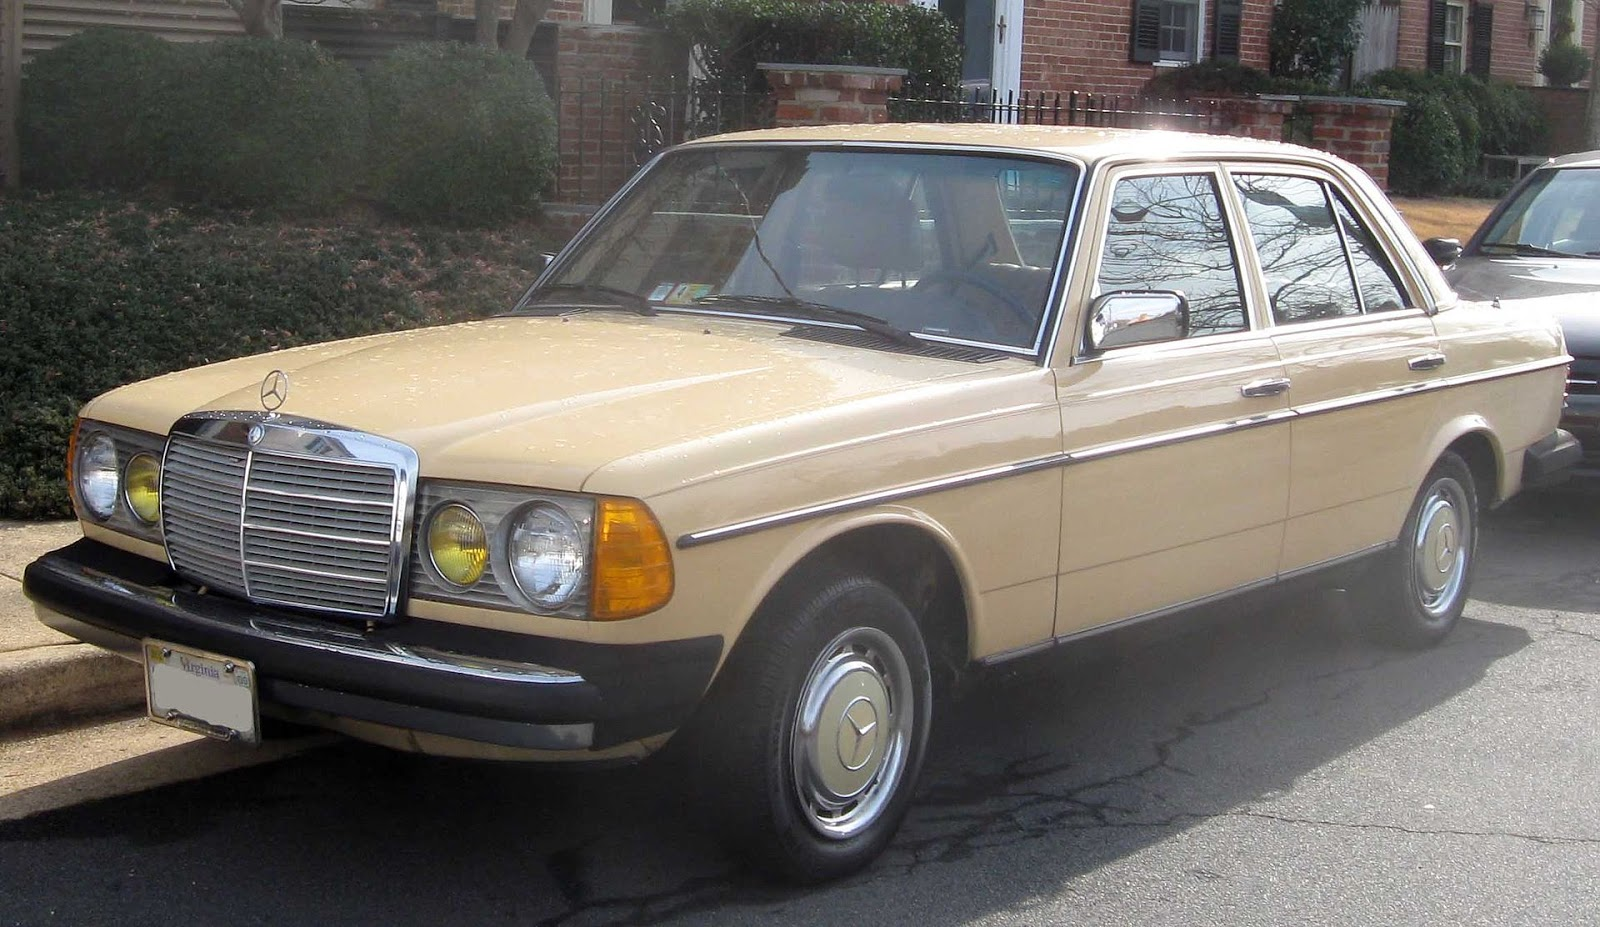 Mercedes Benz W114/115, W123 & W124 E-Class | Car guy's paradise